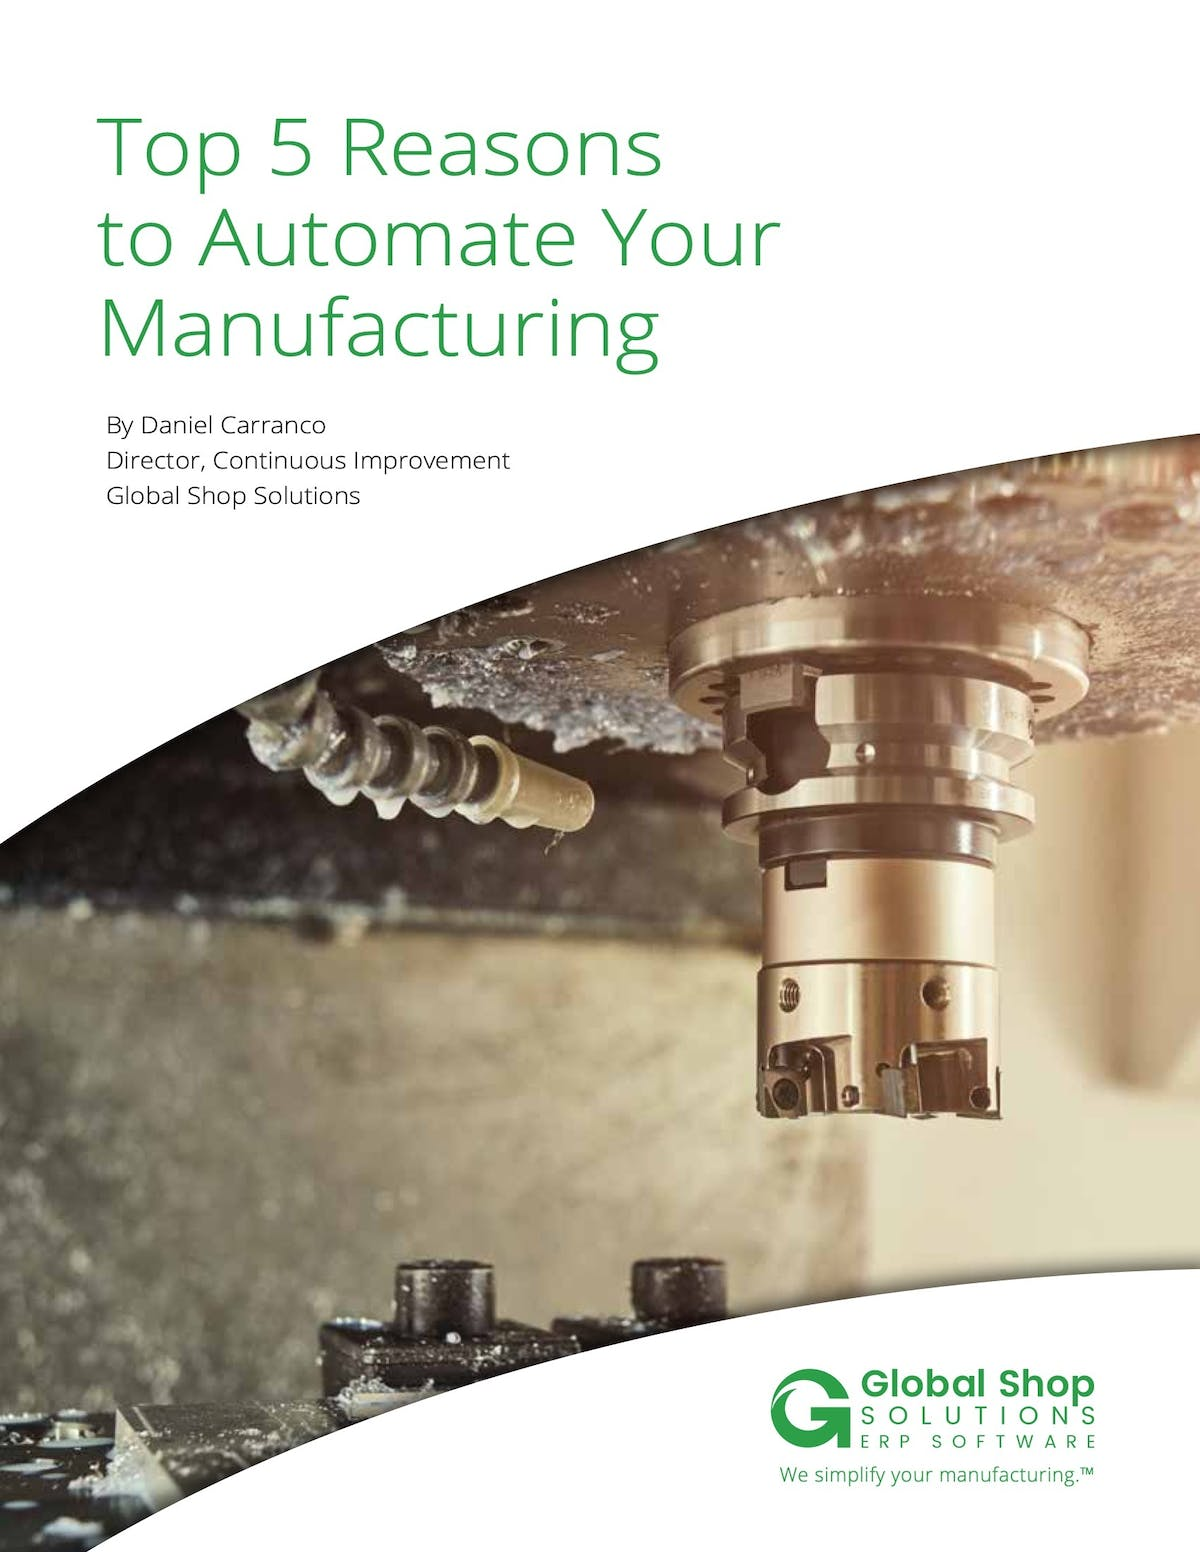 Global Shop Solutions White Paper - Top 5 Reasons to Automate Your Manufacturing